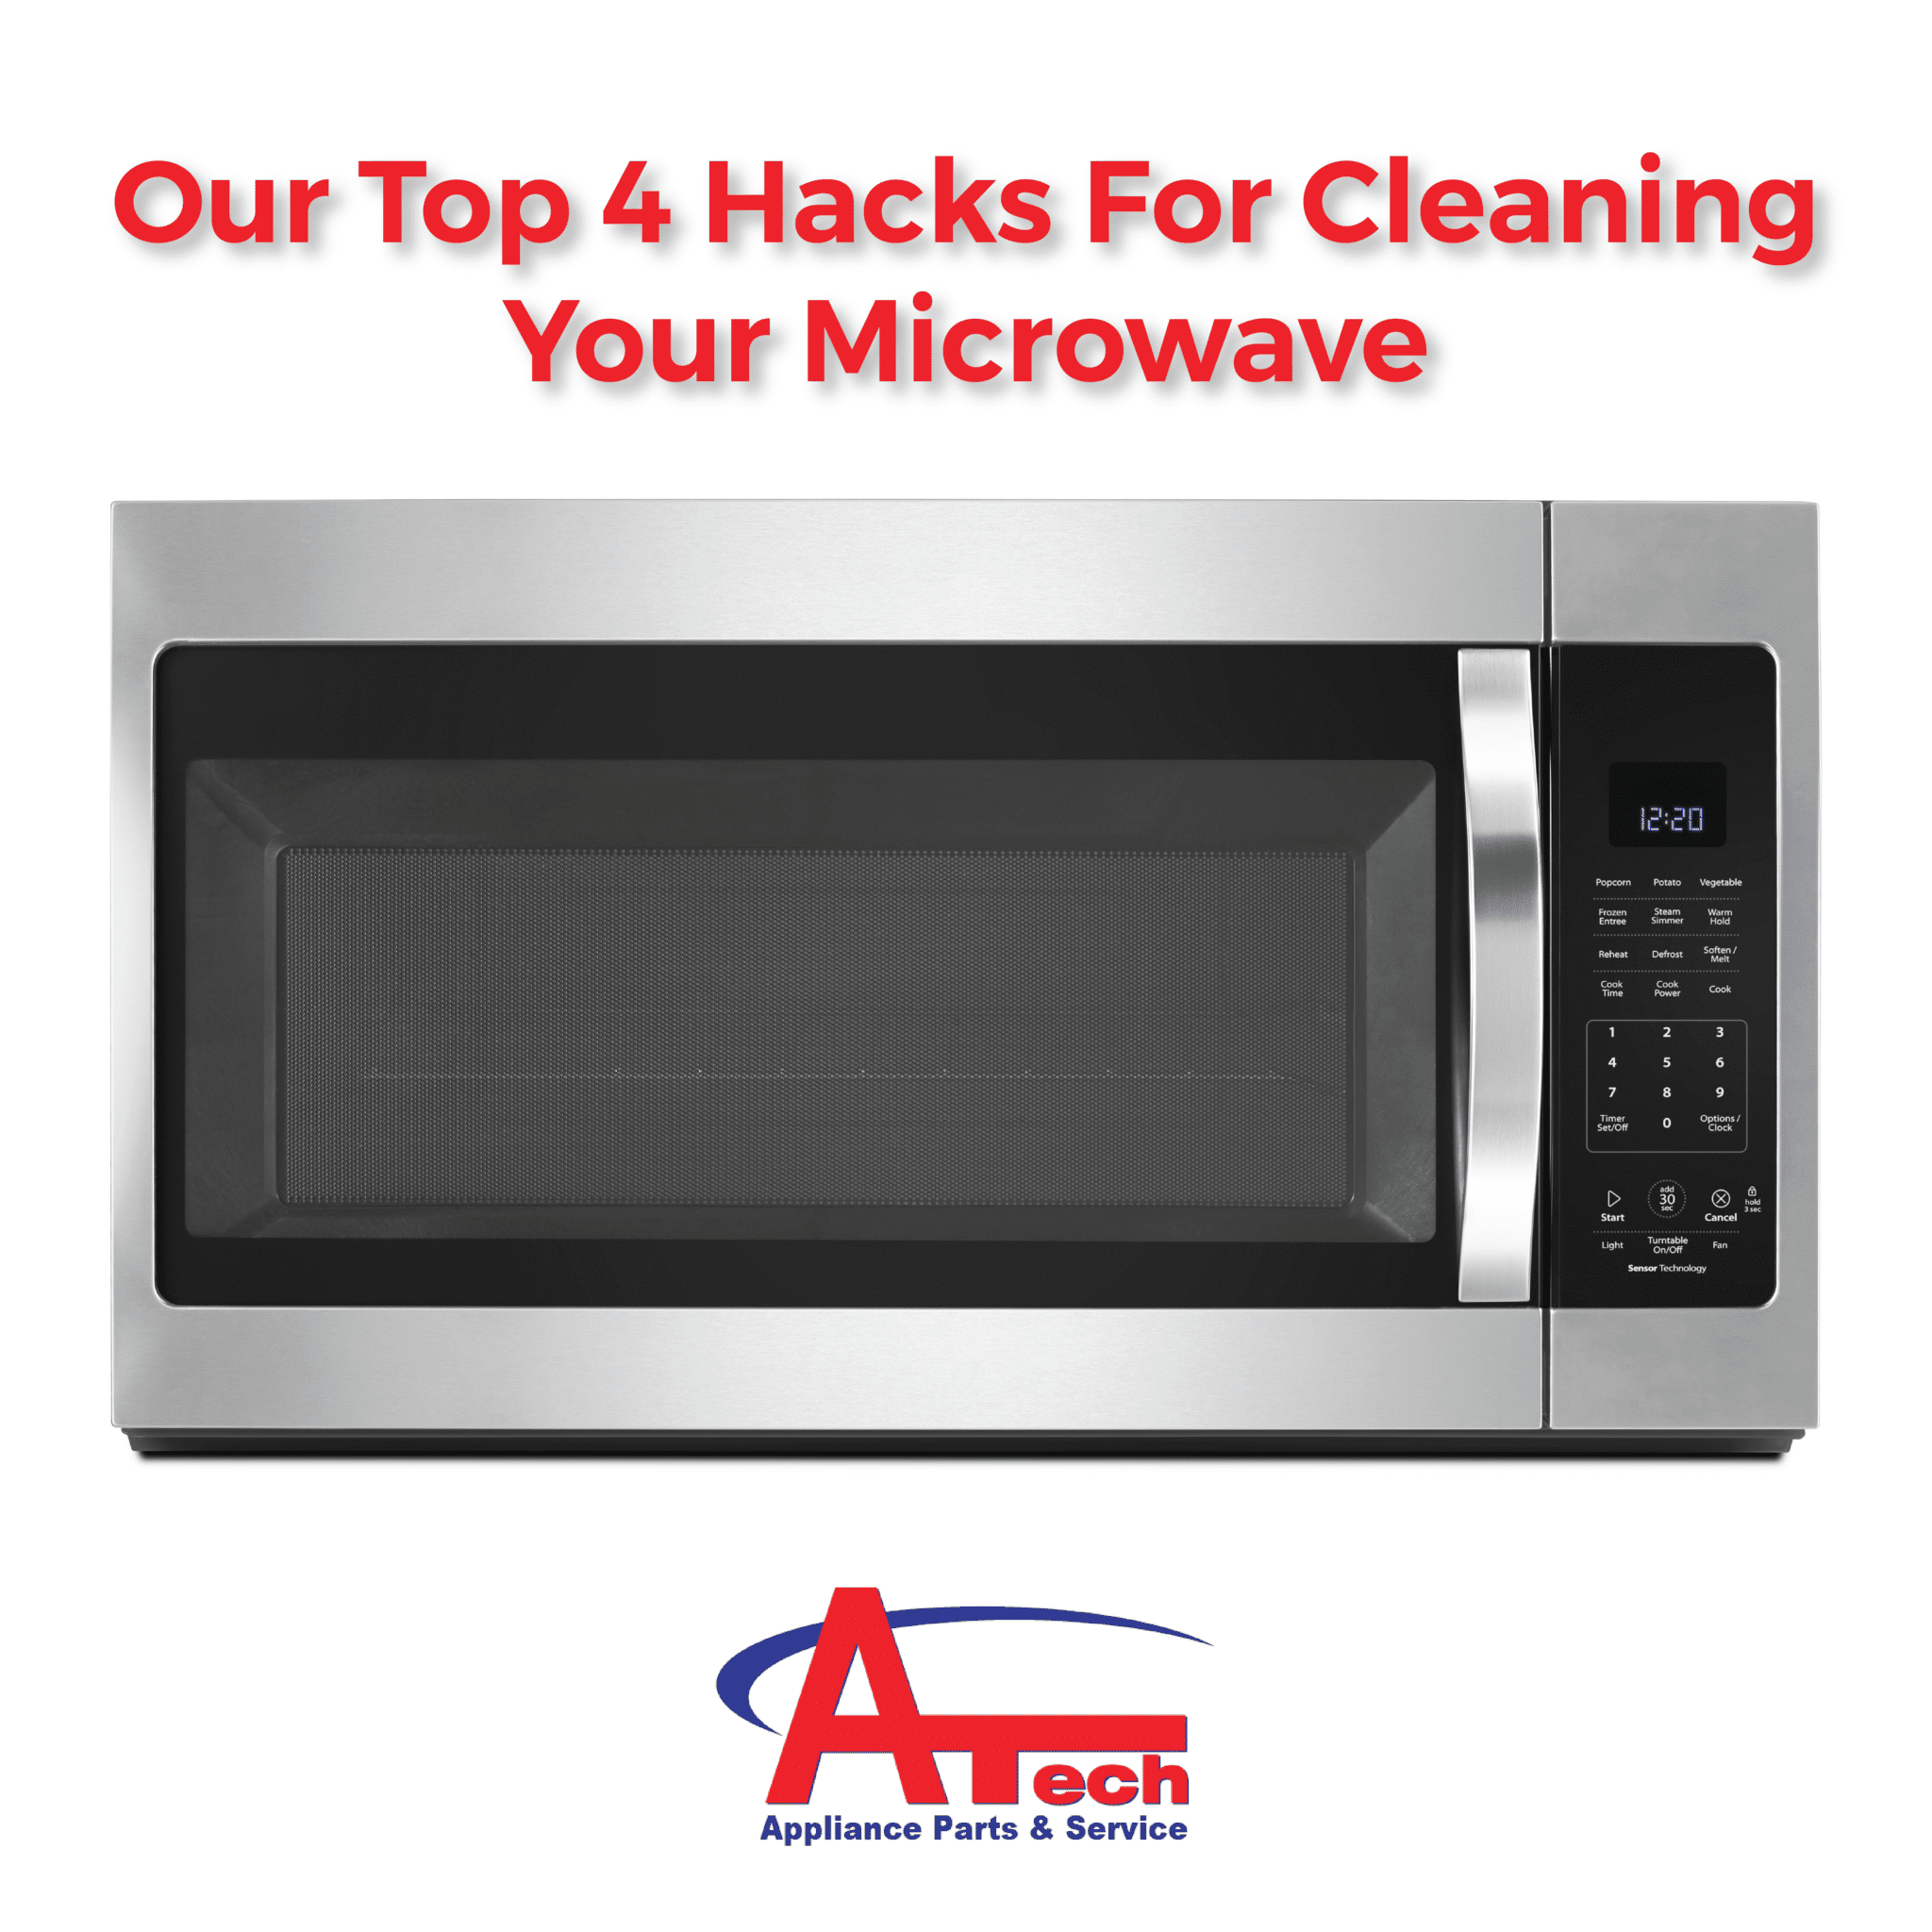 Our Top 4 Hacks For Cleaning Your Microwave A Tech Liance